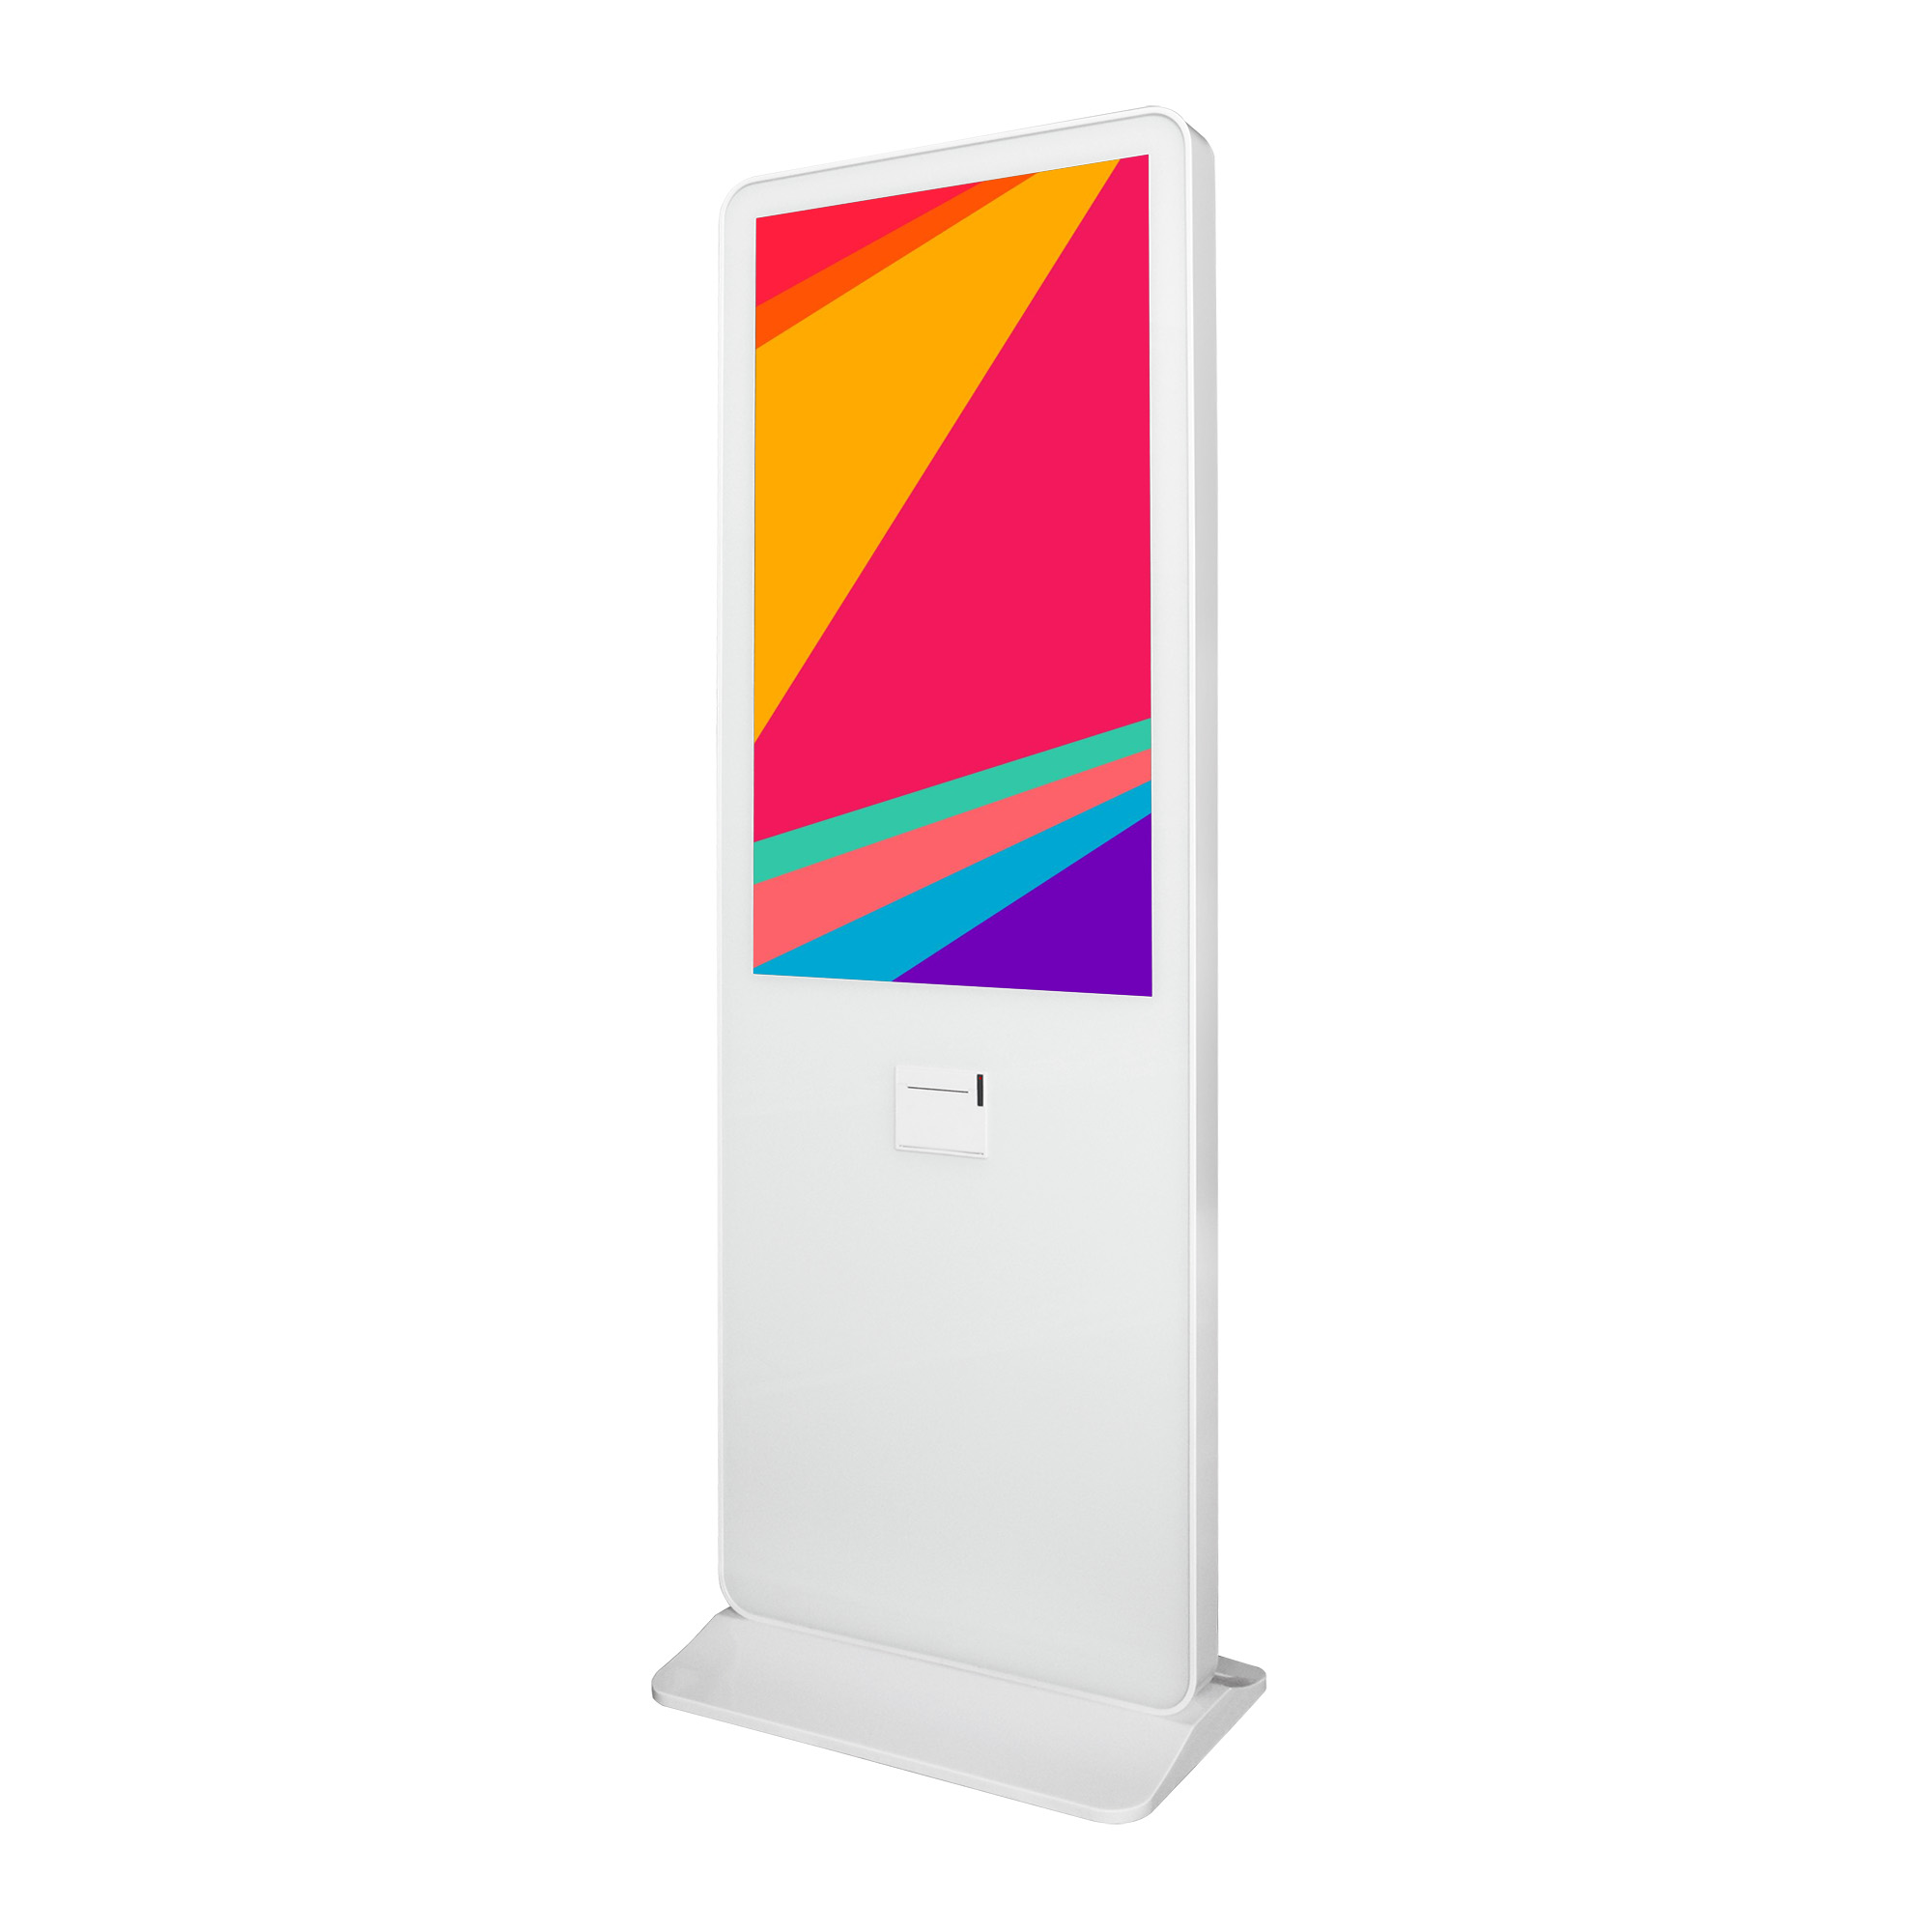 43inch Capacitive Touch Screen Self <strong>Payment</strong> Kiosk With Thermal Printer White Shopping Mall Windows OS <strong>Payment</strong> Kiosk